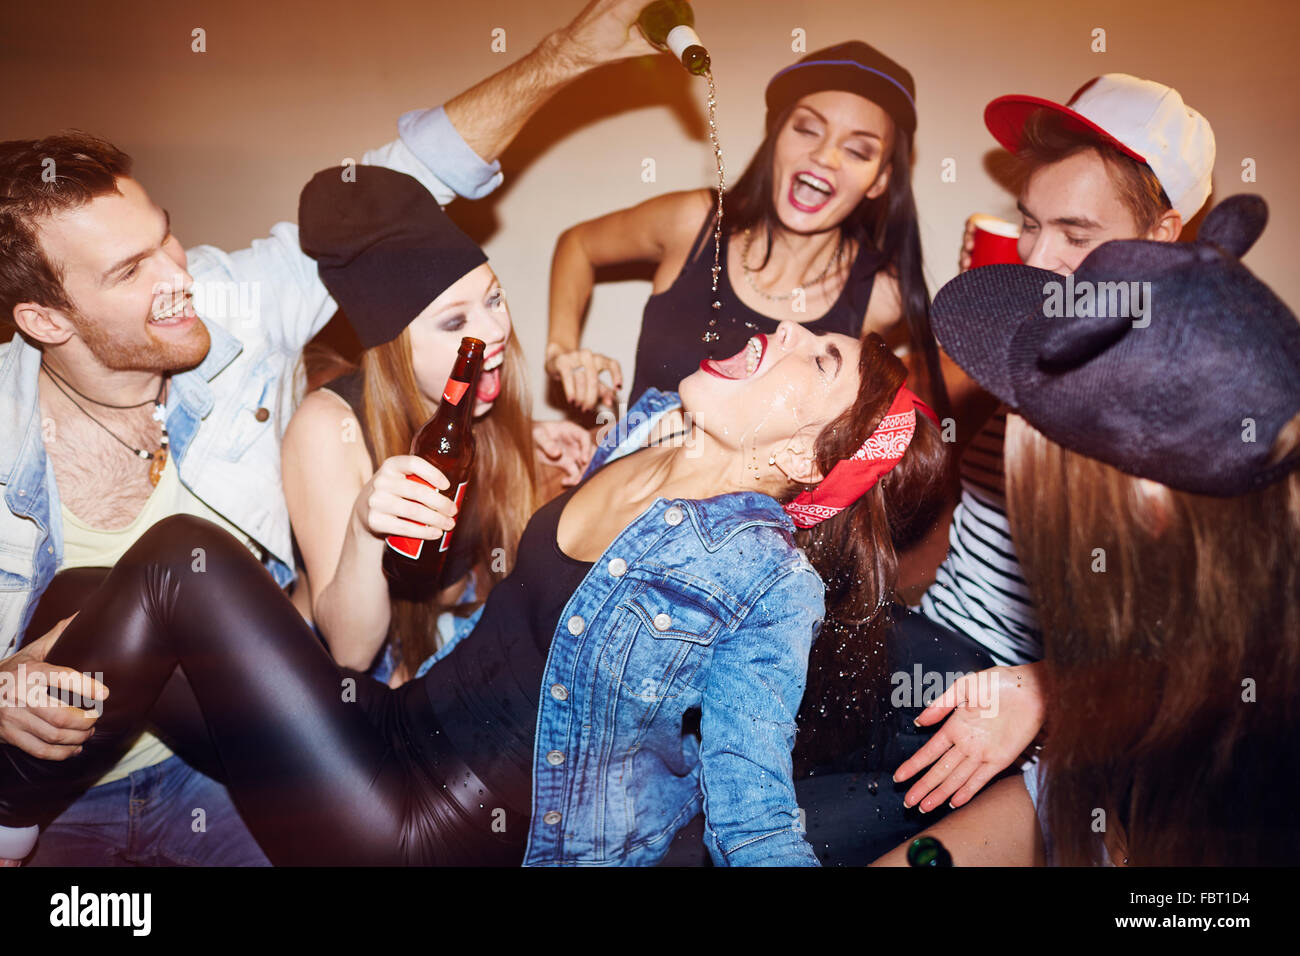 Ecstatic friends pouring beer into girl mouth at swag party - Stock Image